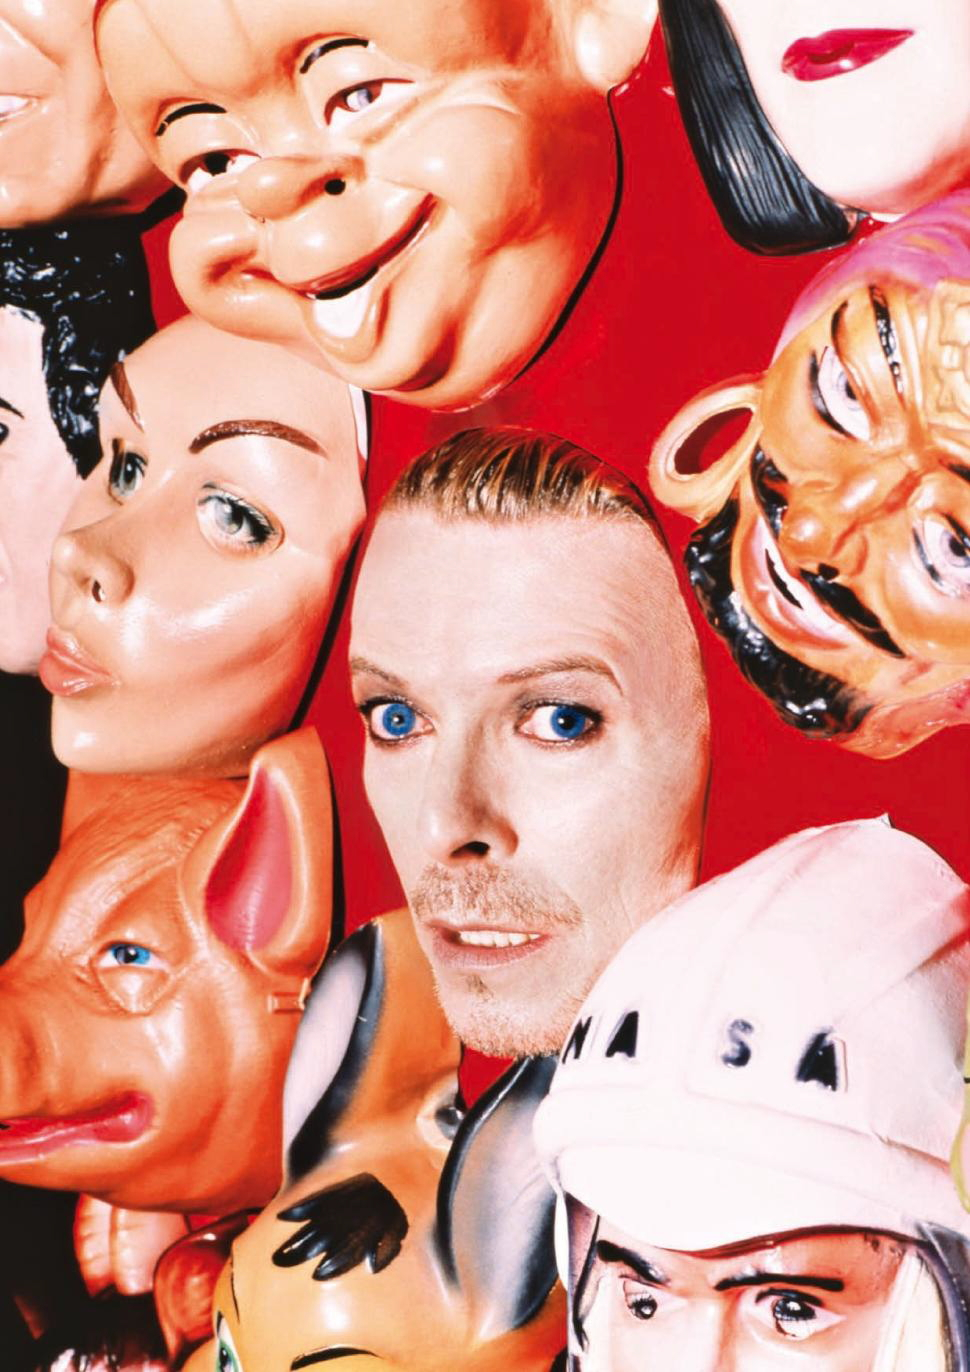 [David Bowie : Face Masks, by David LaChapelle, 1995]